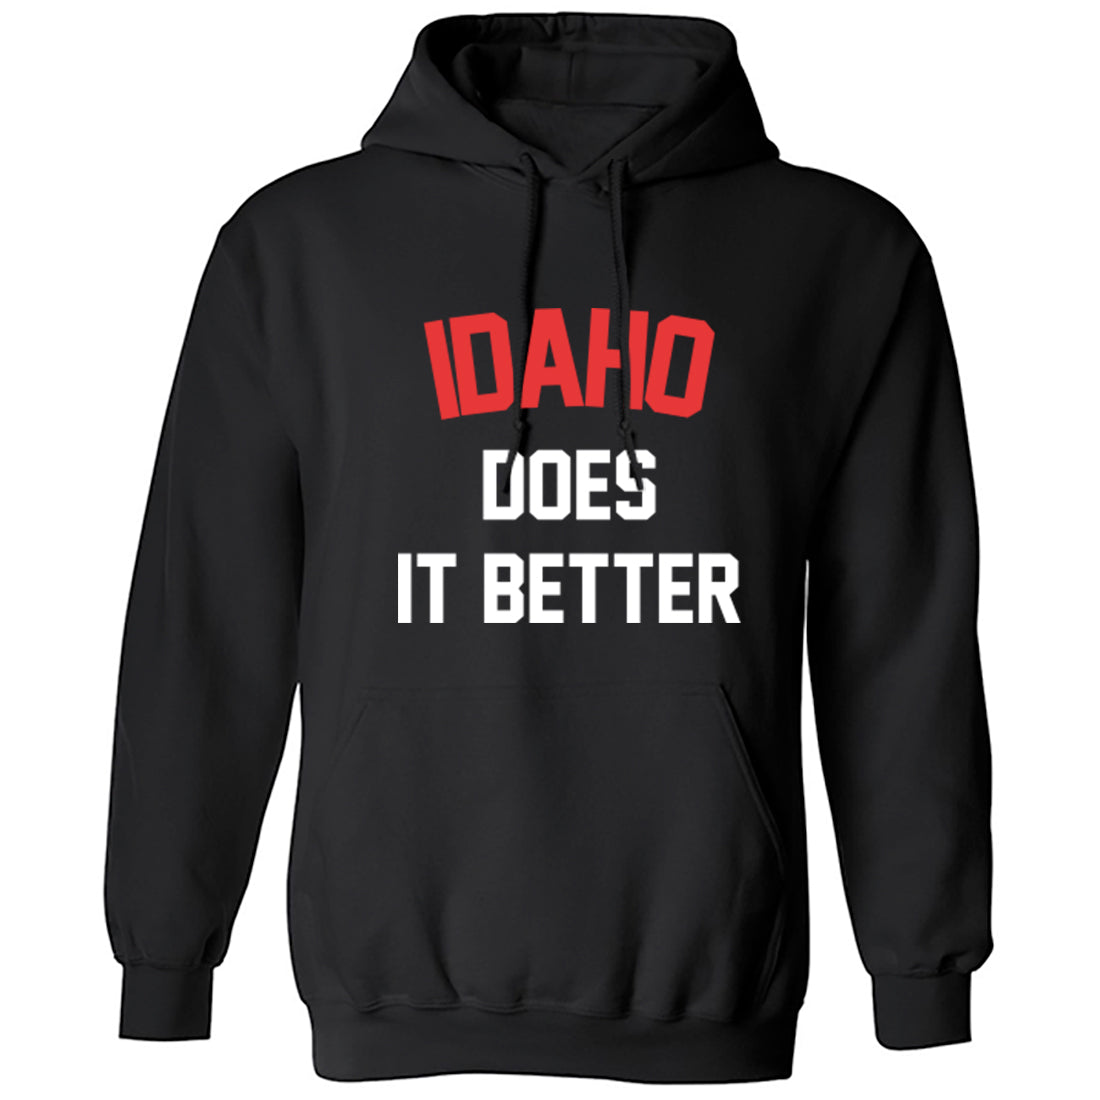 Idaho Does Is Better Unisex Hoodie K1152 - Illustrated Identity Ltd.